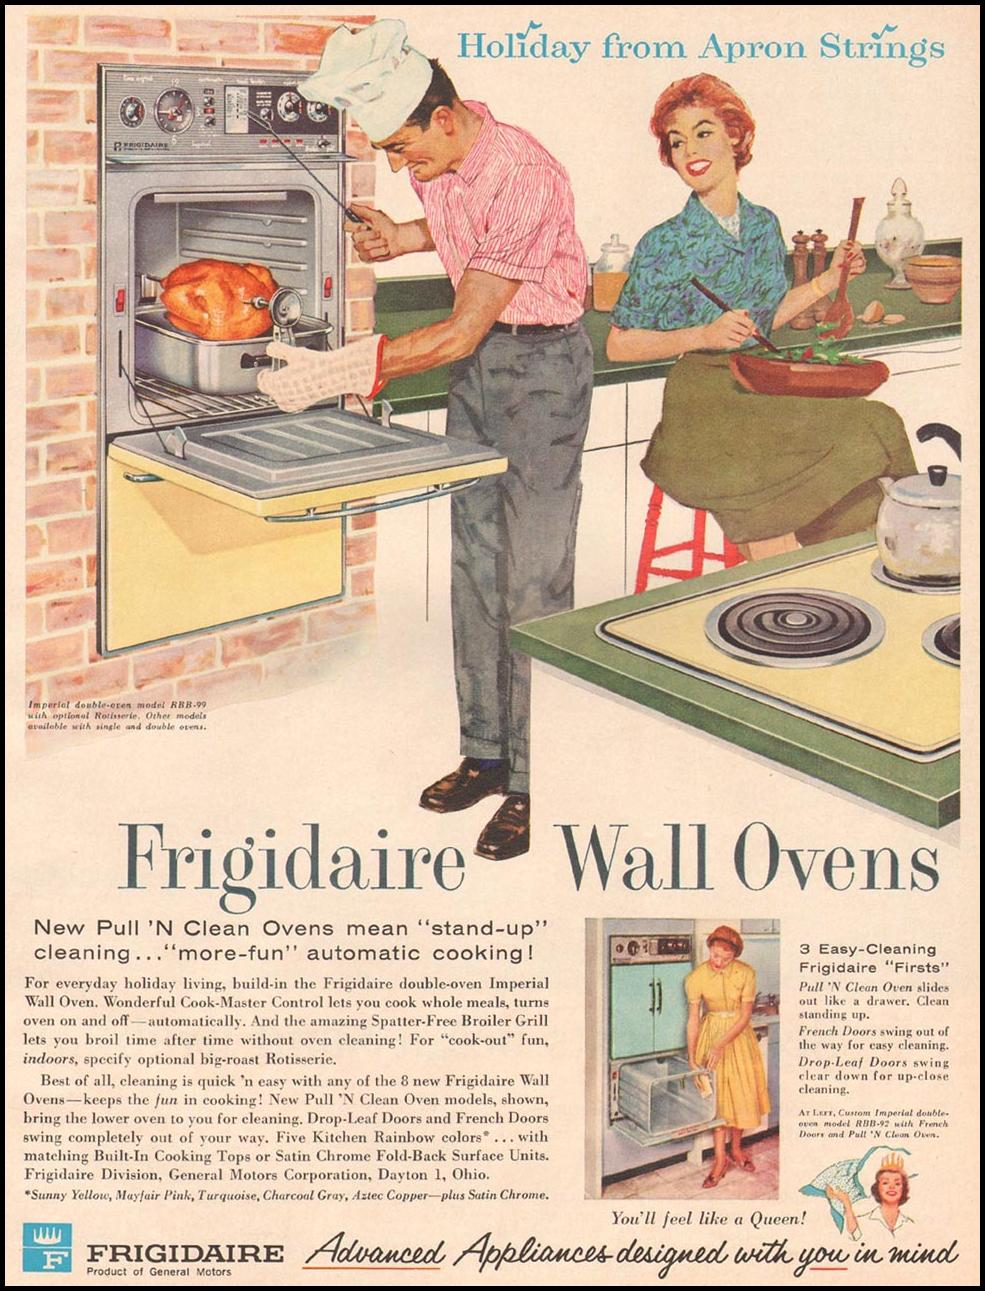 FRIGIDAIRE WALL OVENS BETTER HOMES AND GARDENS 03/01/1960 p. 31